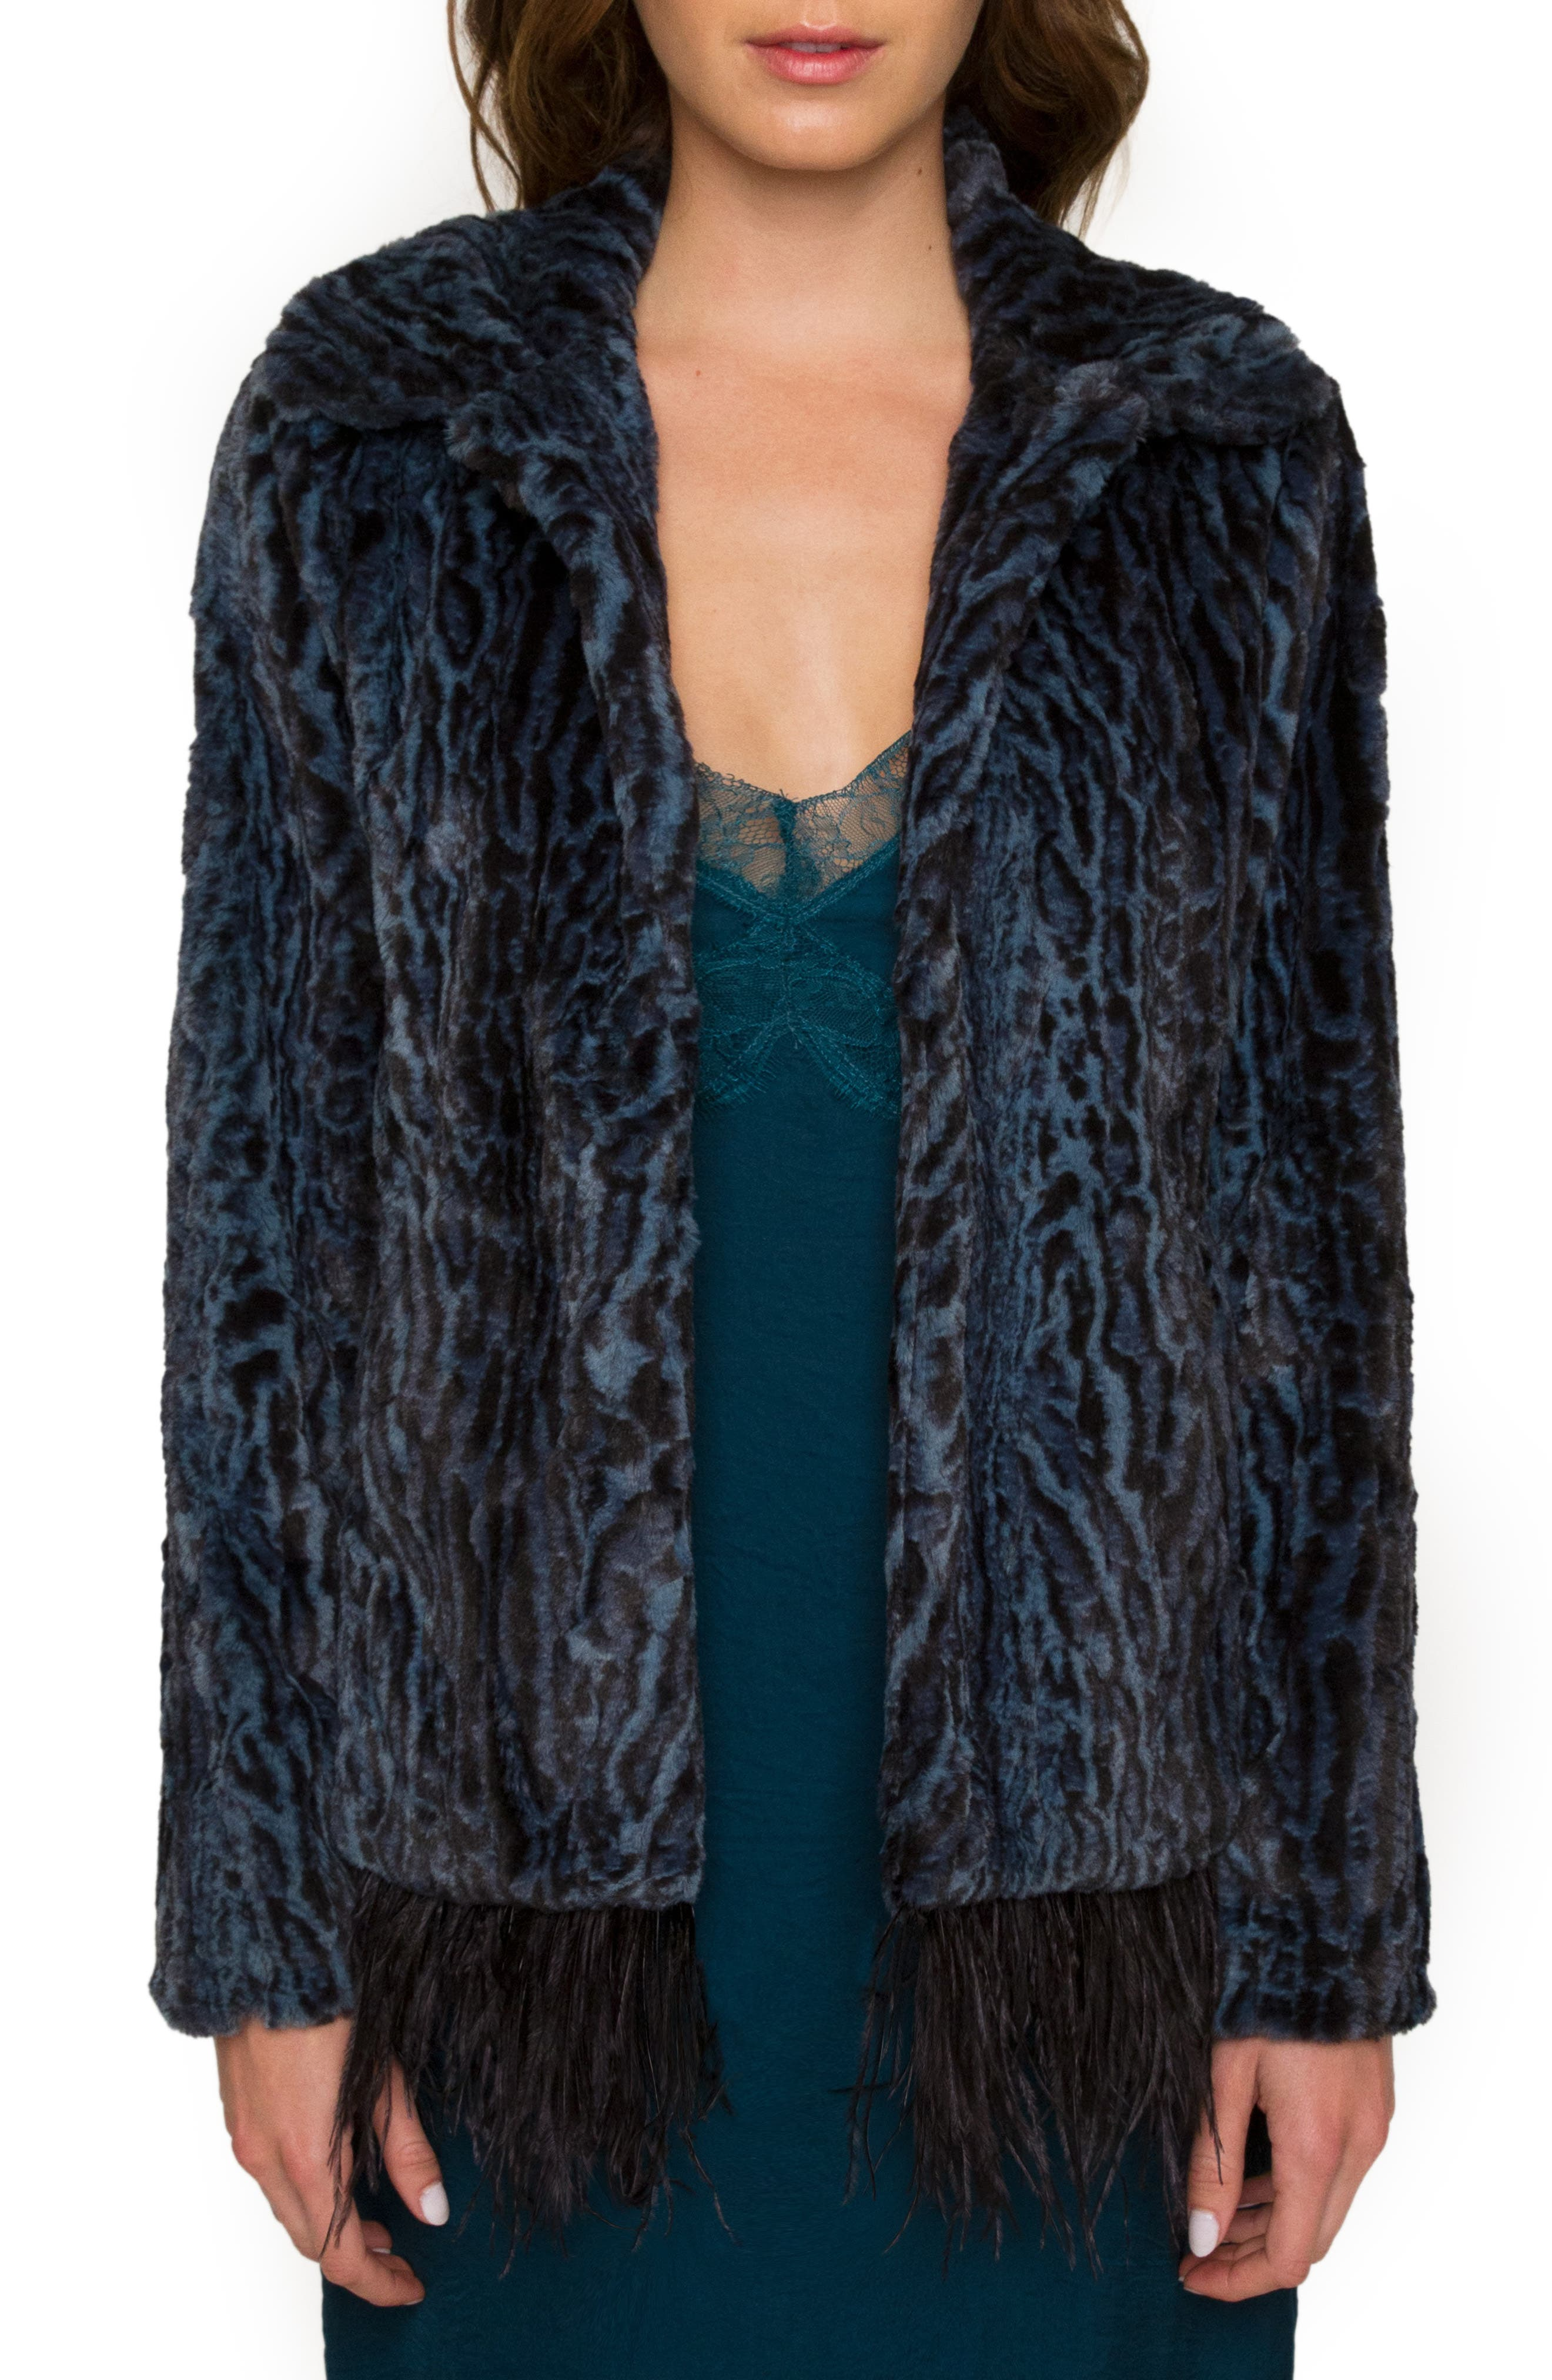 Alternate Image 1 Selected - Willow & Clay Animal Print Faux Fur Jacket